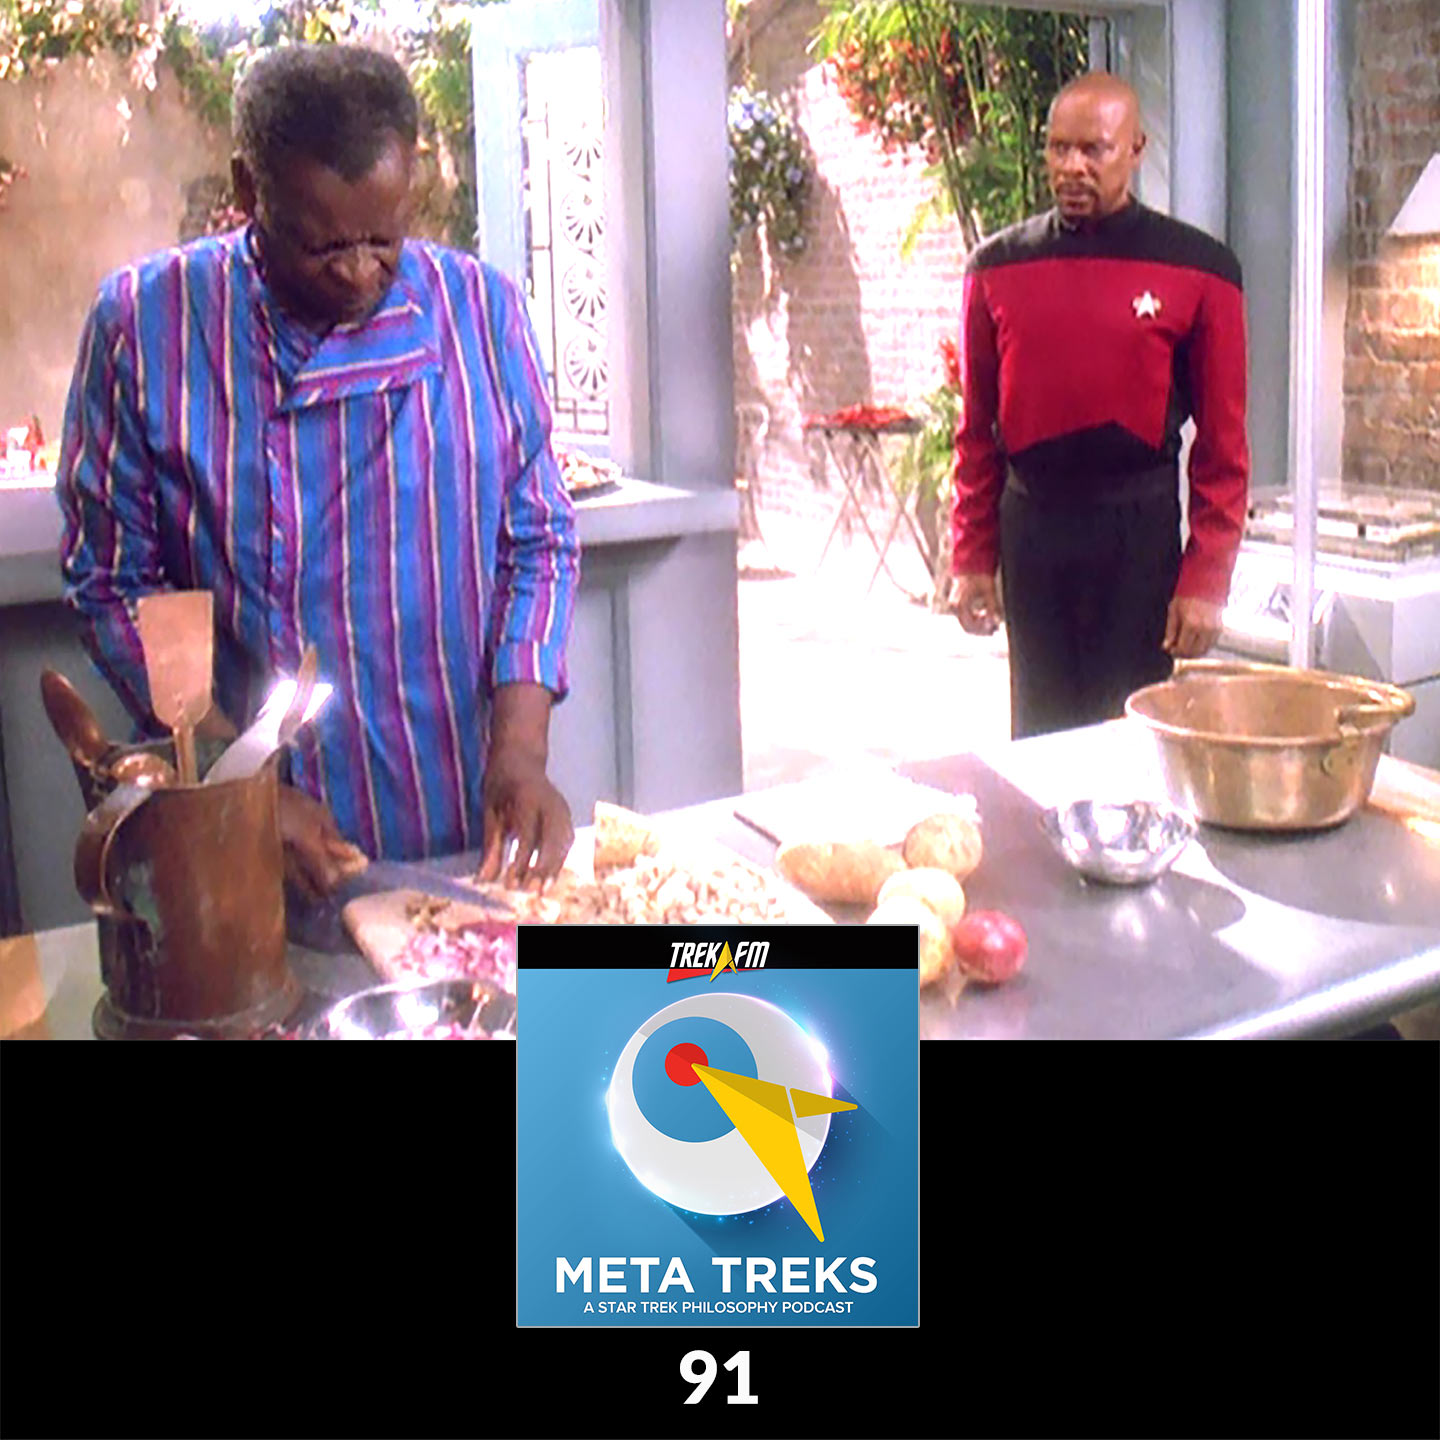 Meta Treks 91: Get That Whale Some Gumbo - Equality and Equal Rights.